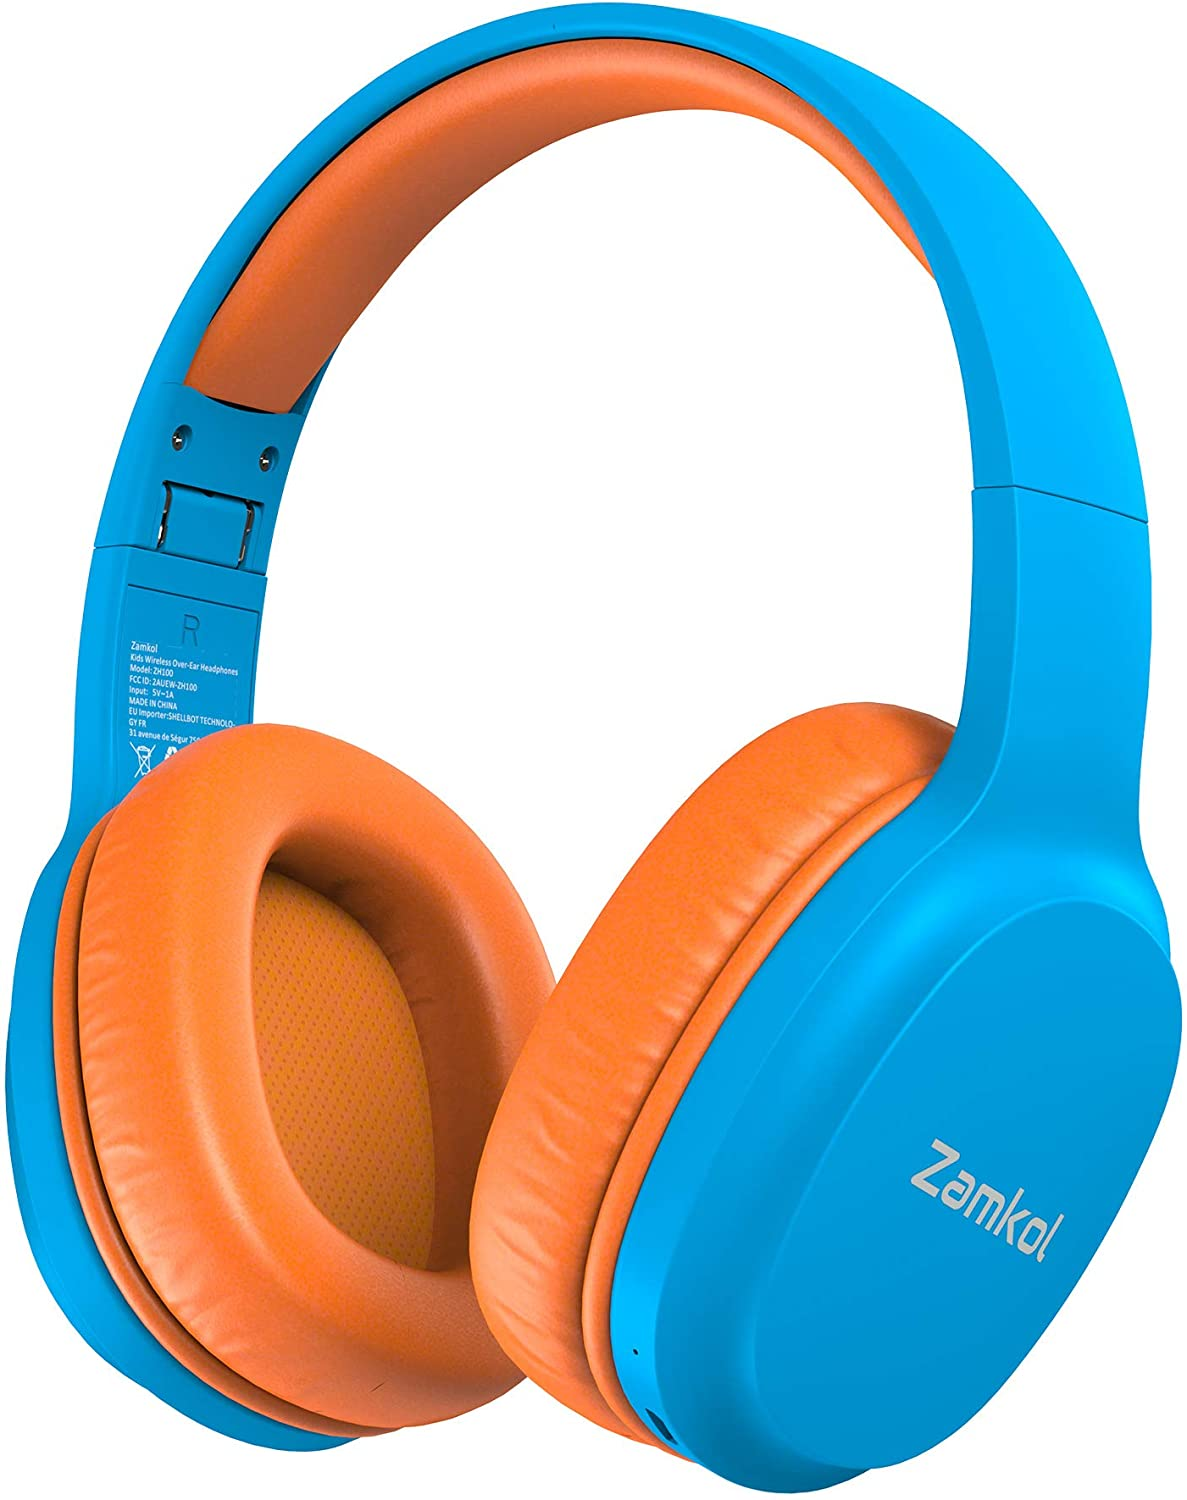 Look this headphones this is one for the best headphones for the kids and also on of the best kids headphones for the school